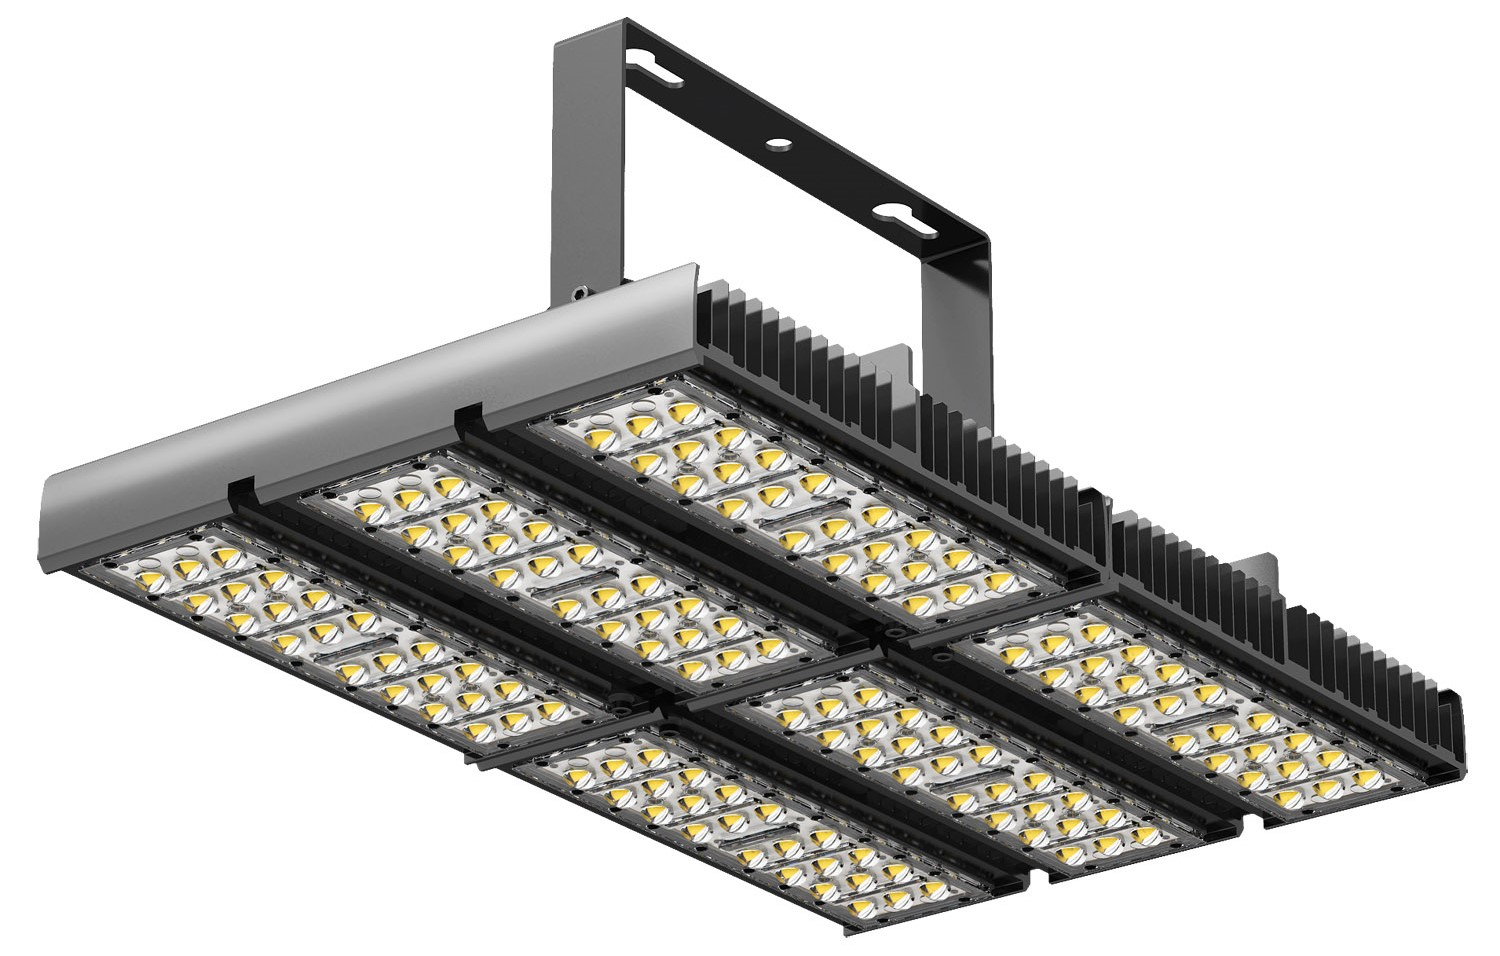 SD-30W 60W 90W 120W 180W 240W or 50W 100W 150W 200W 300W 400W|Flood LED(New).Module Design.Easy to meet custome present and future needs and protect customer investment.